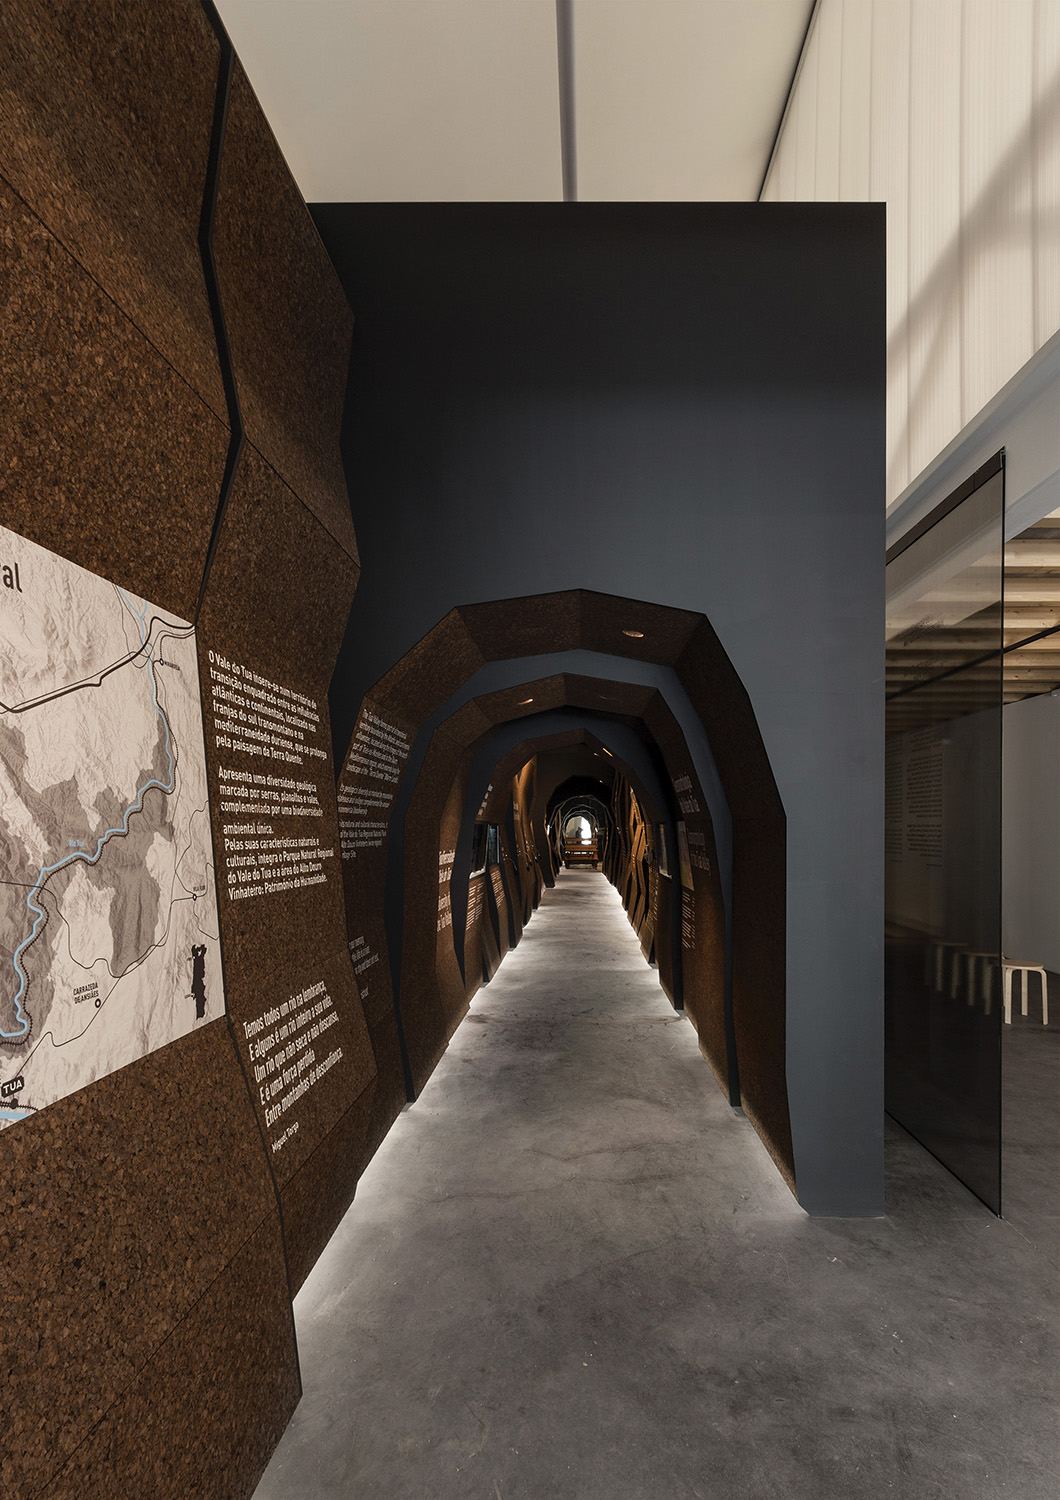 exhibition cork tunnel and the translucency of the mezzanine polycarbonate Luís Ferreira Alves